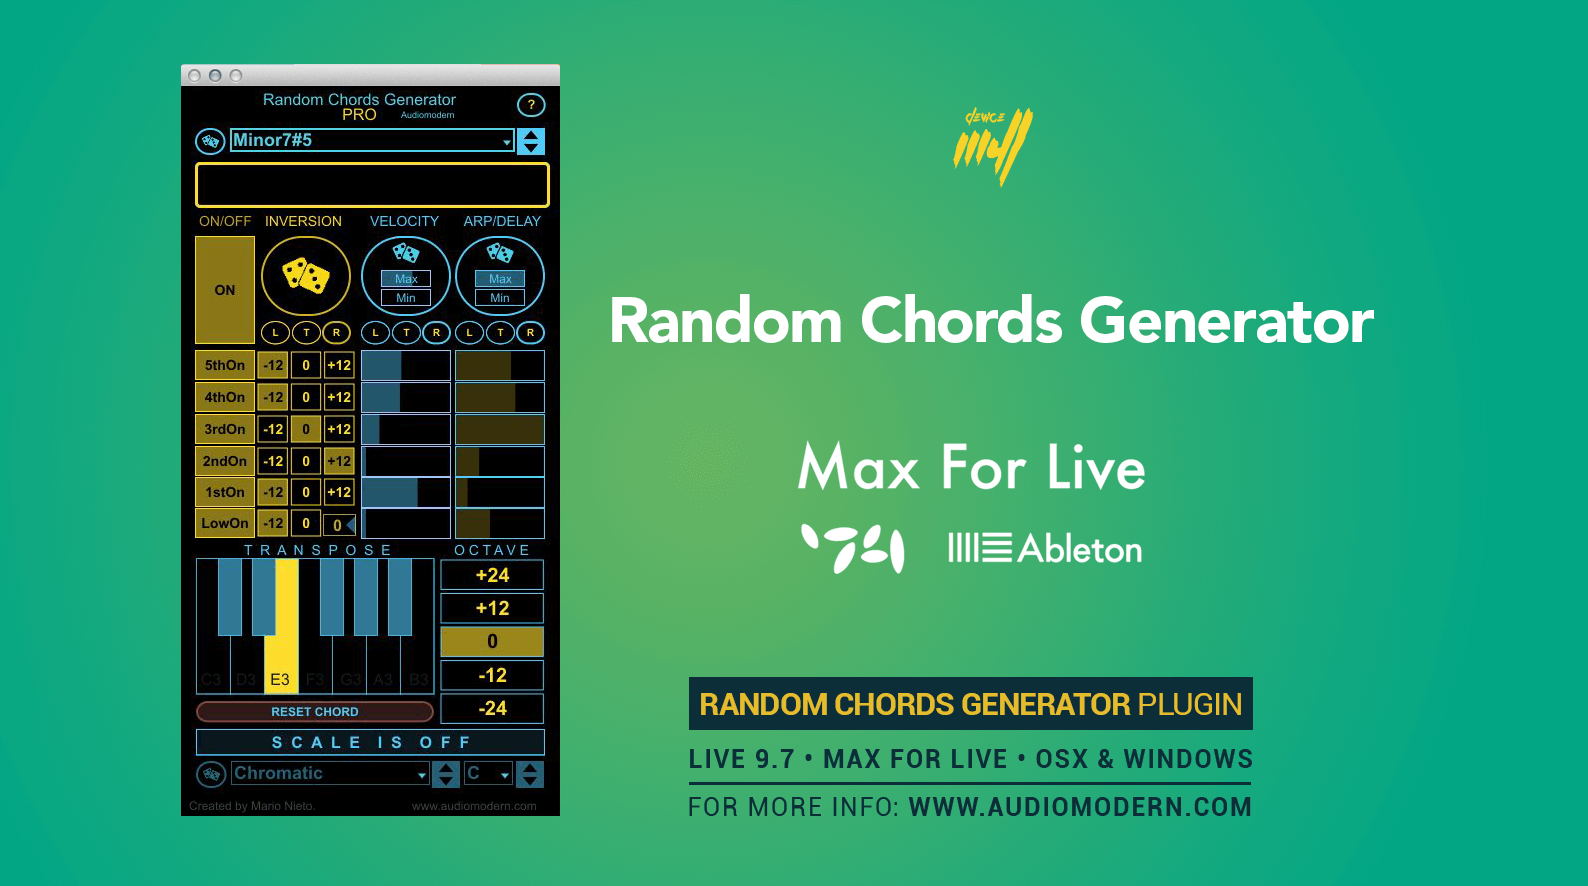 Audiomodern releases Random Chords Generator PRO for Max for